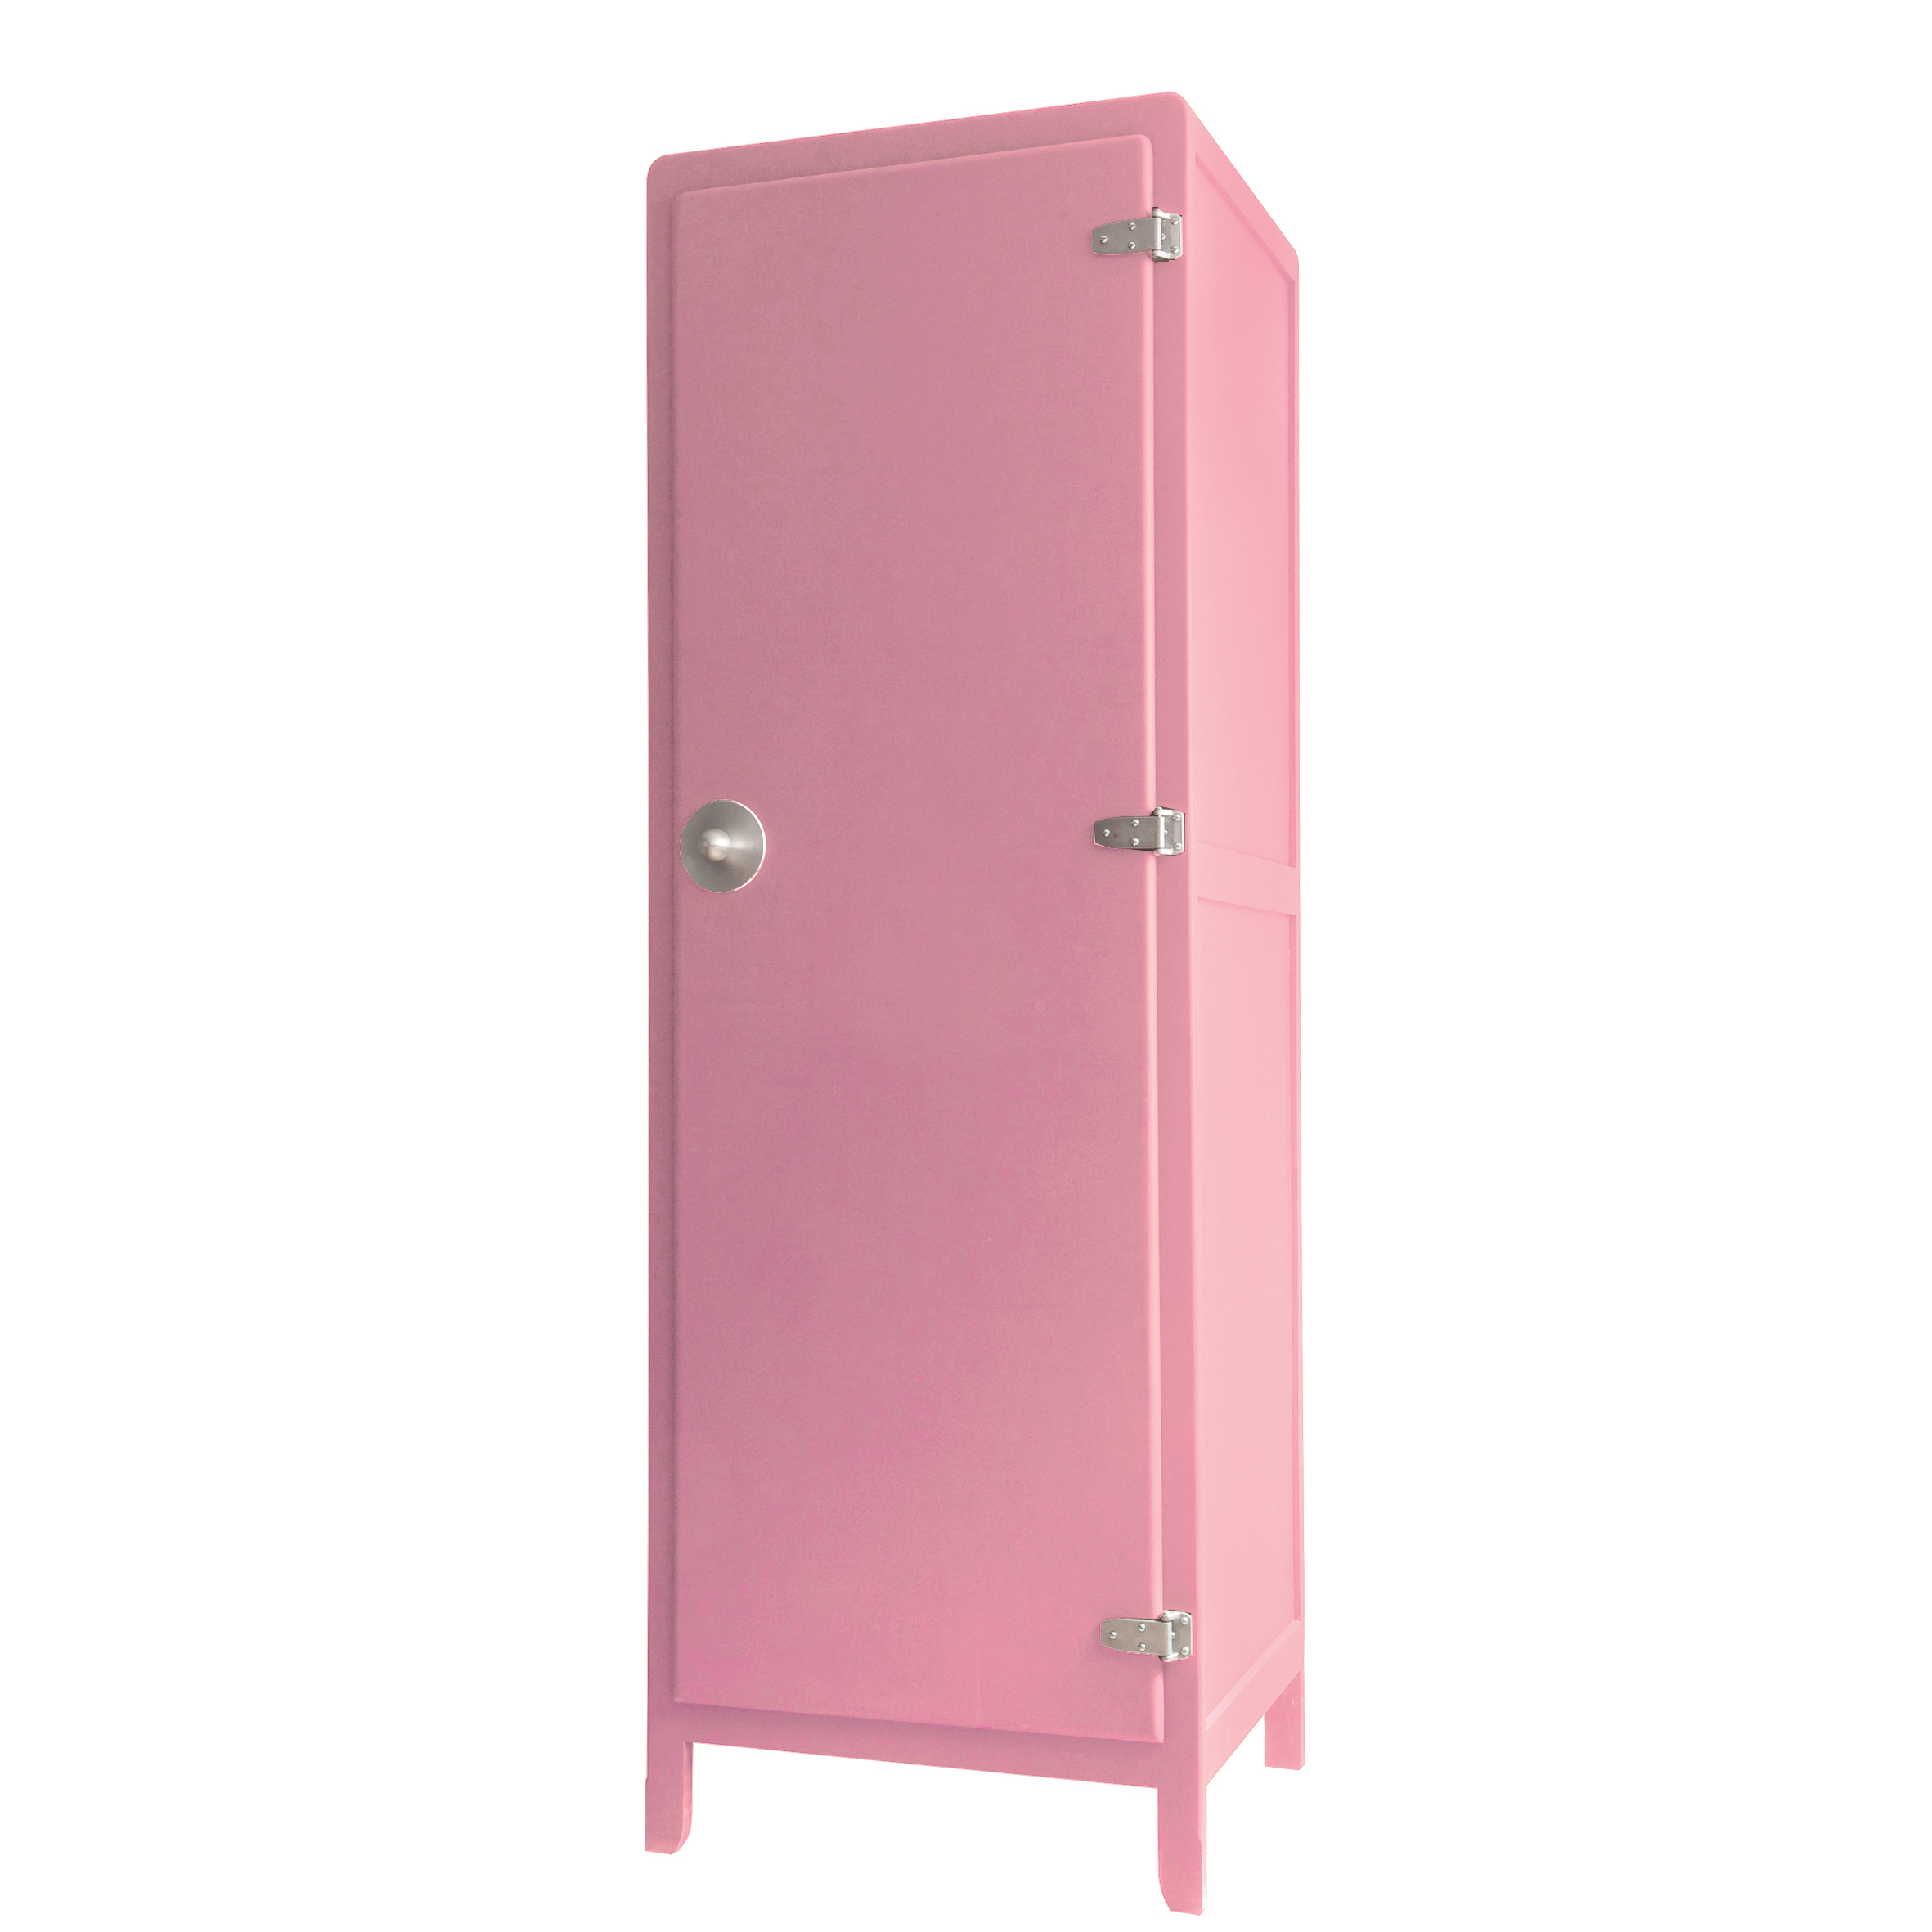 armoire culte vieux rose laurette pour chambre enfant les enfants du design. Black Bedroom Furniture Sets. Home Design Ideas